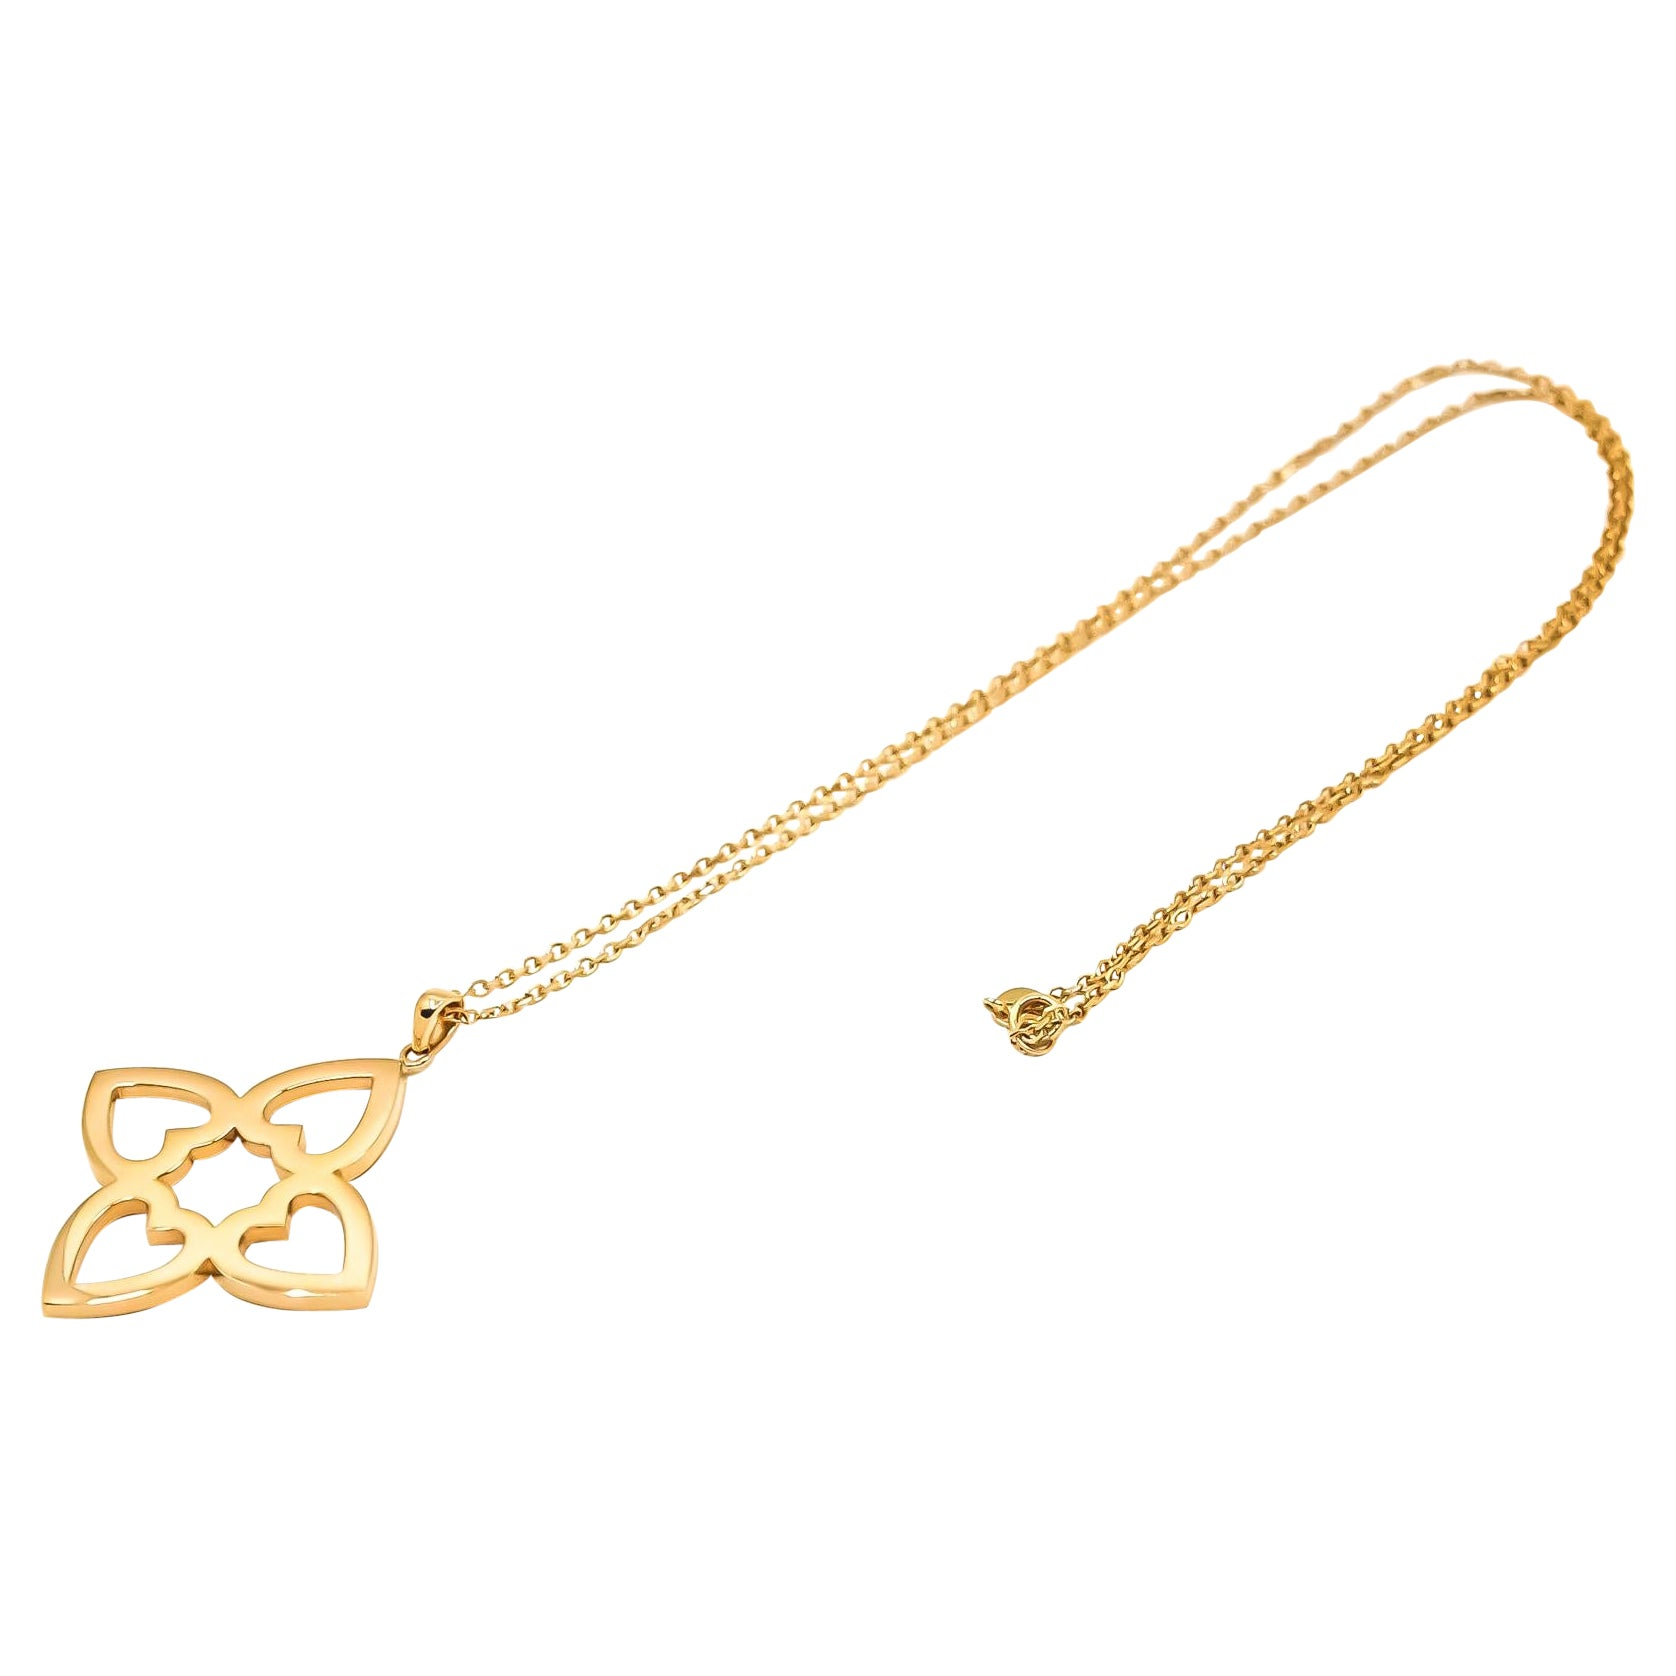 Connected Hearts Pendant in 18kt Gold